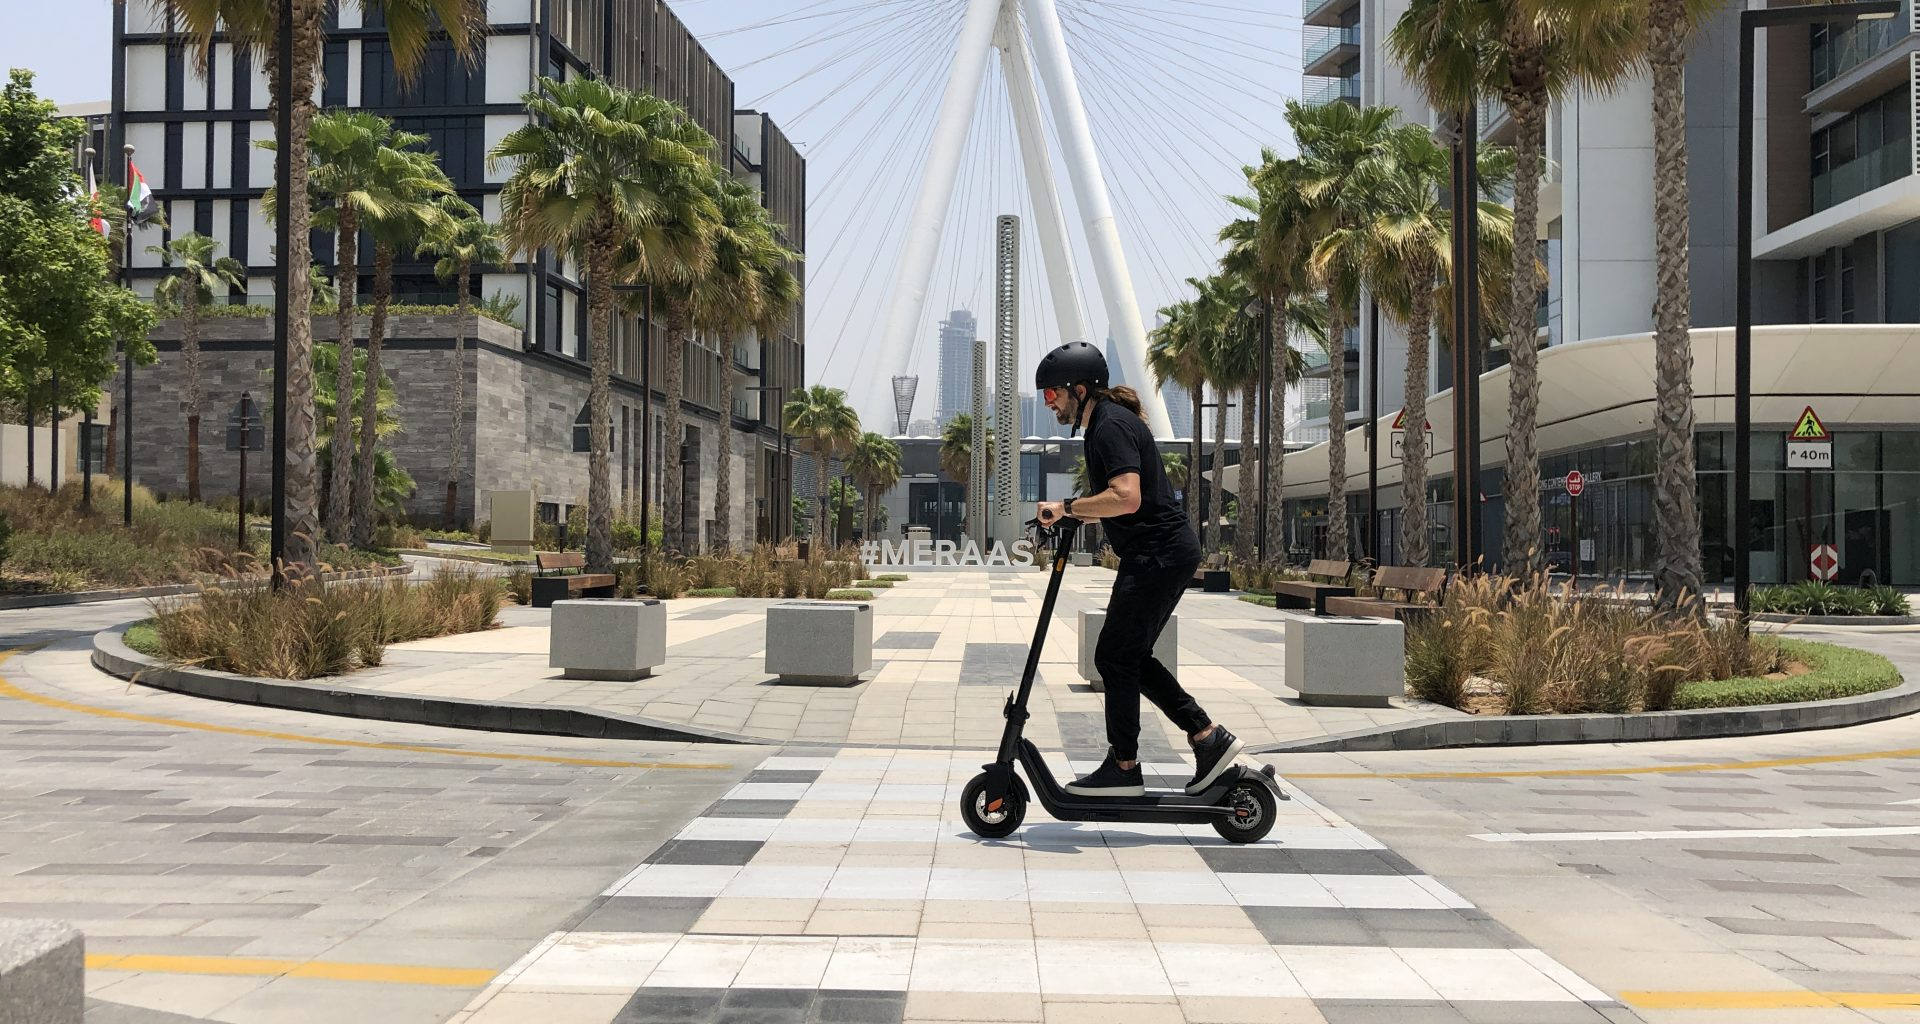 An electric scooter commuter riding a NIU KQi3